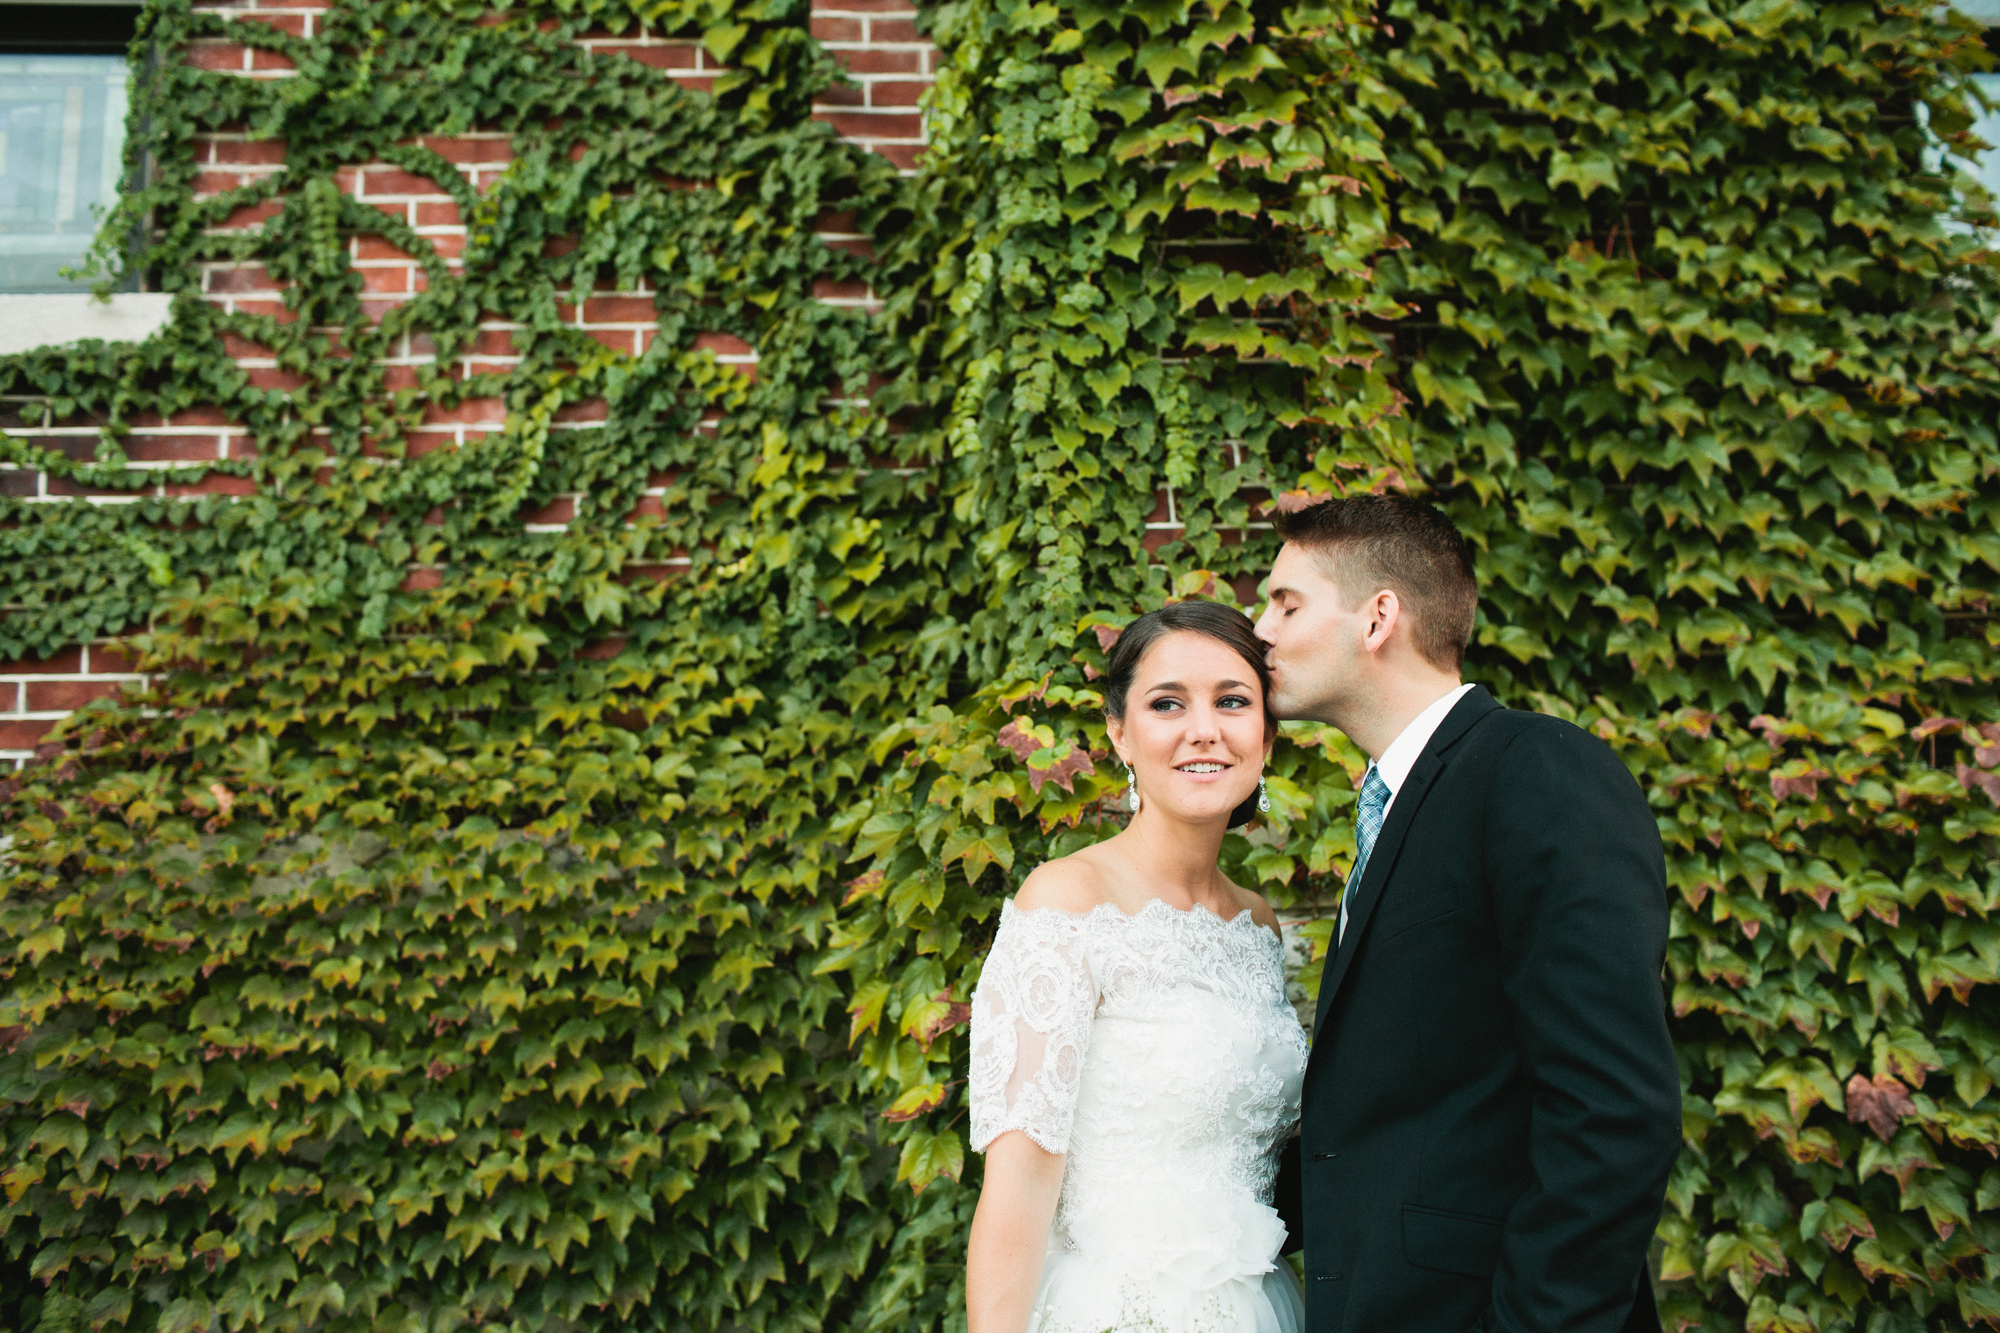 Davey & Kaylee Wed (673 of 983).jpg